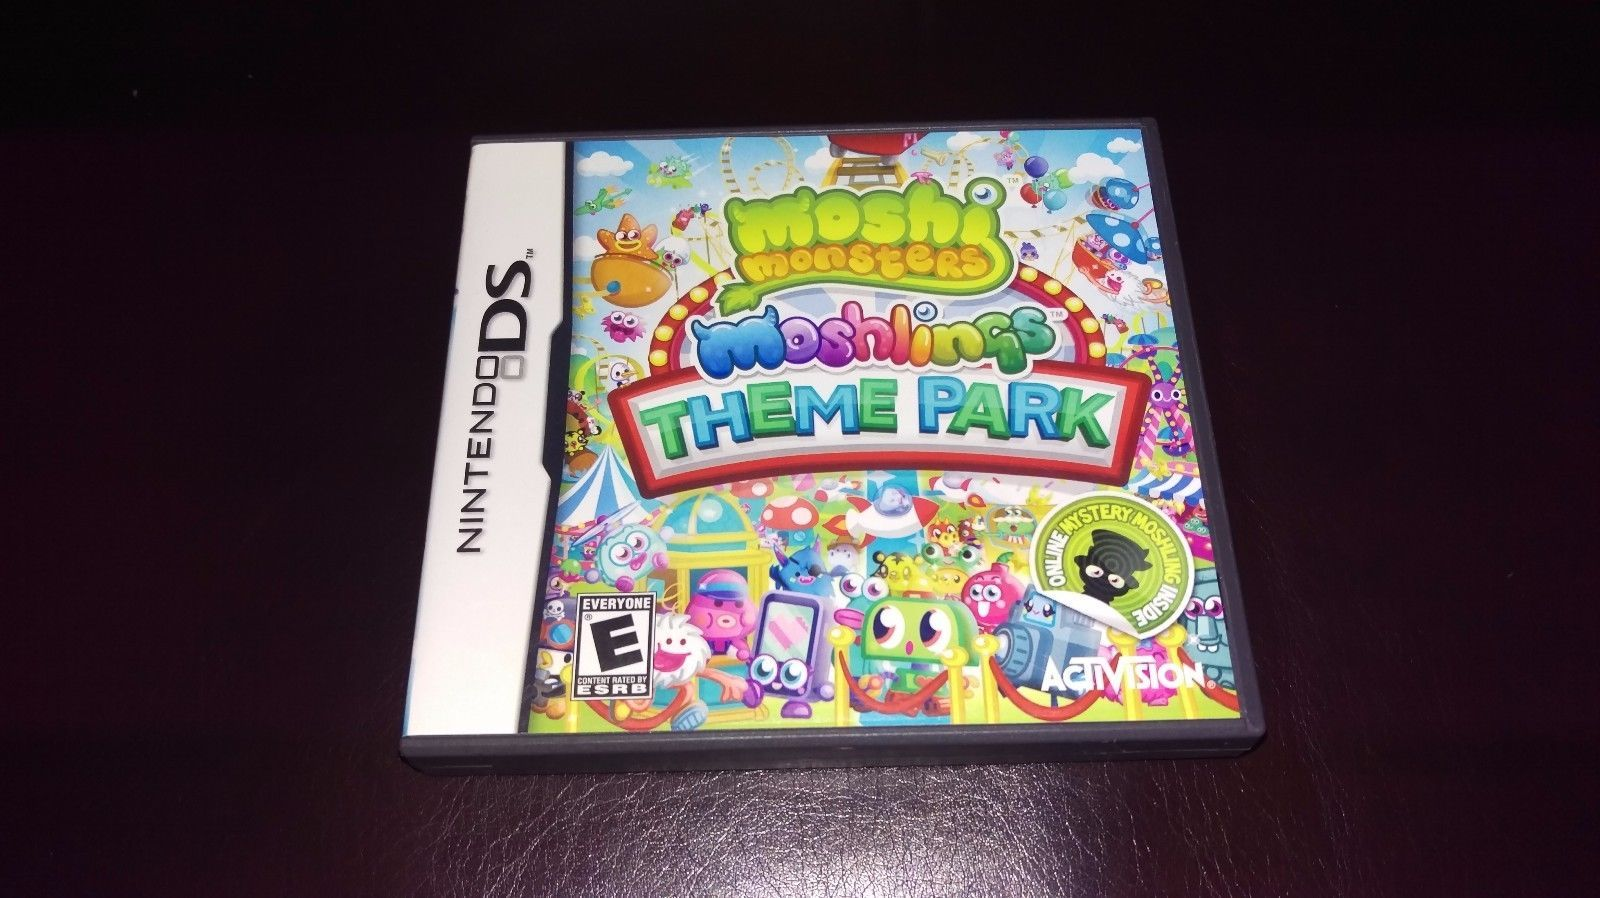 Moshi Monsters Theme Park - Nintendo DS Game and Case https://t.co/qKwdjBcg1I https://t.co/QGCCp1jRvv